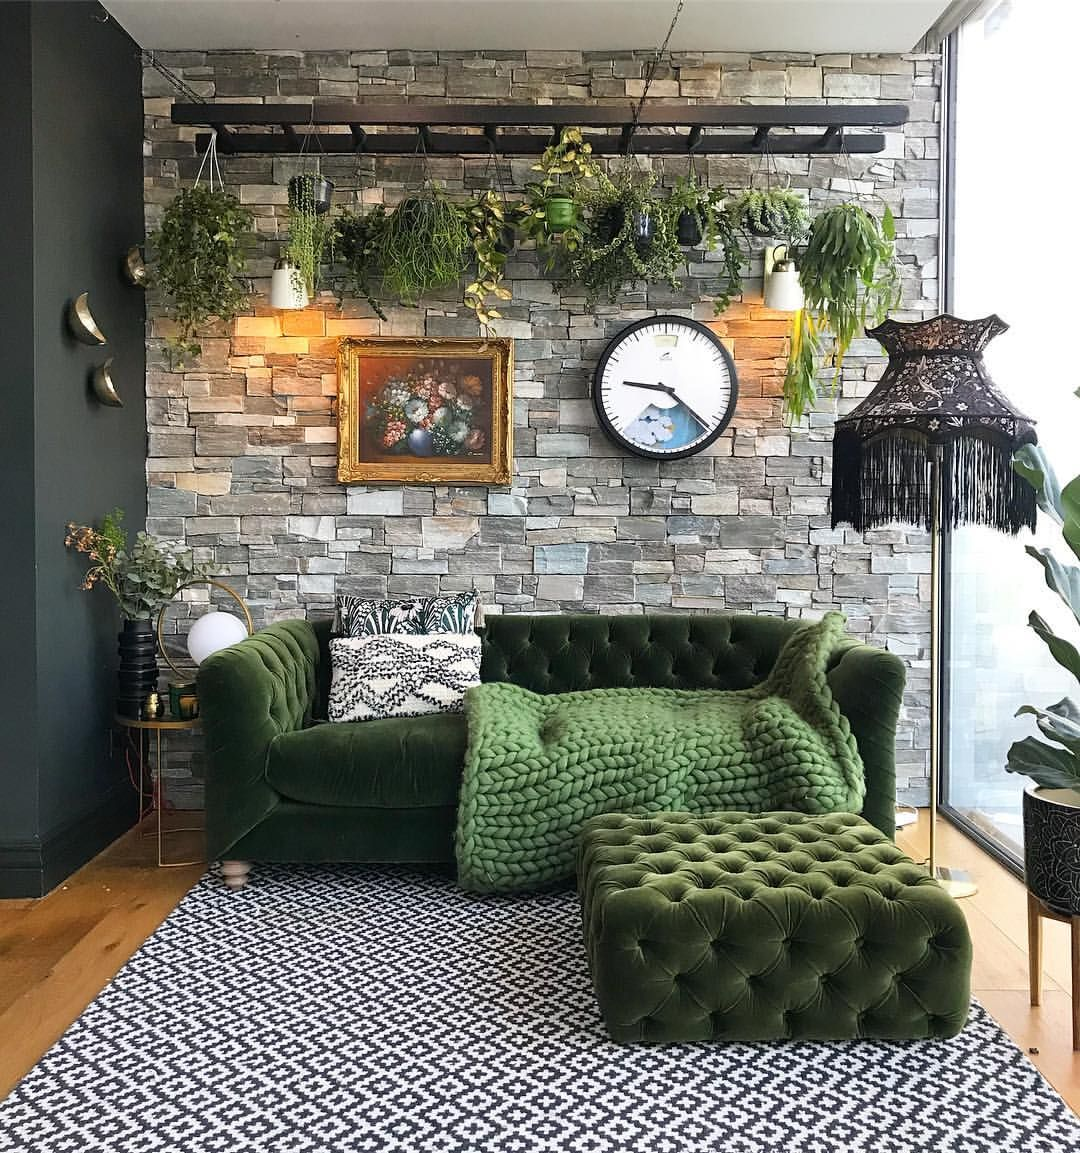 Katie Woods On Instagram When I First Starting Writing My Blog A Couple Of Y Interior Design Living Room Minimalist Living Room Design Farm House Living Room